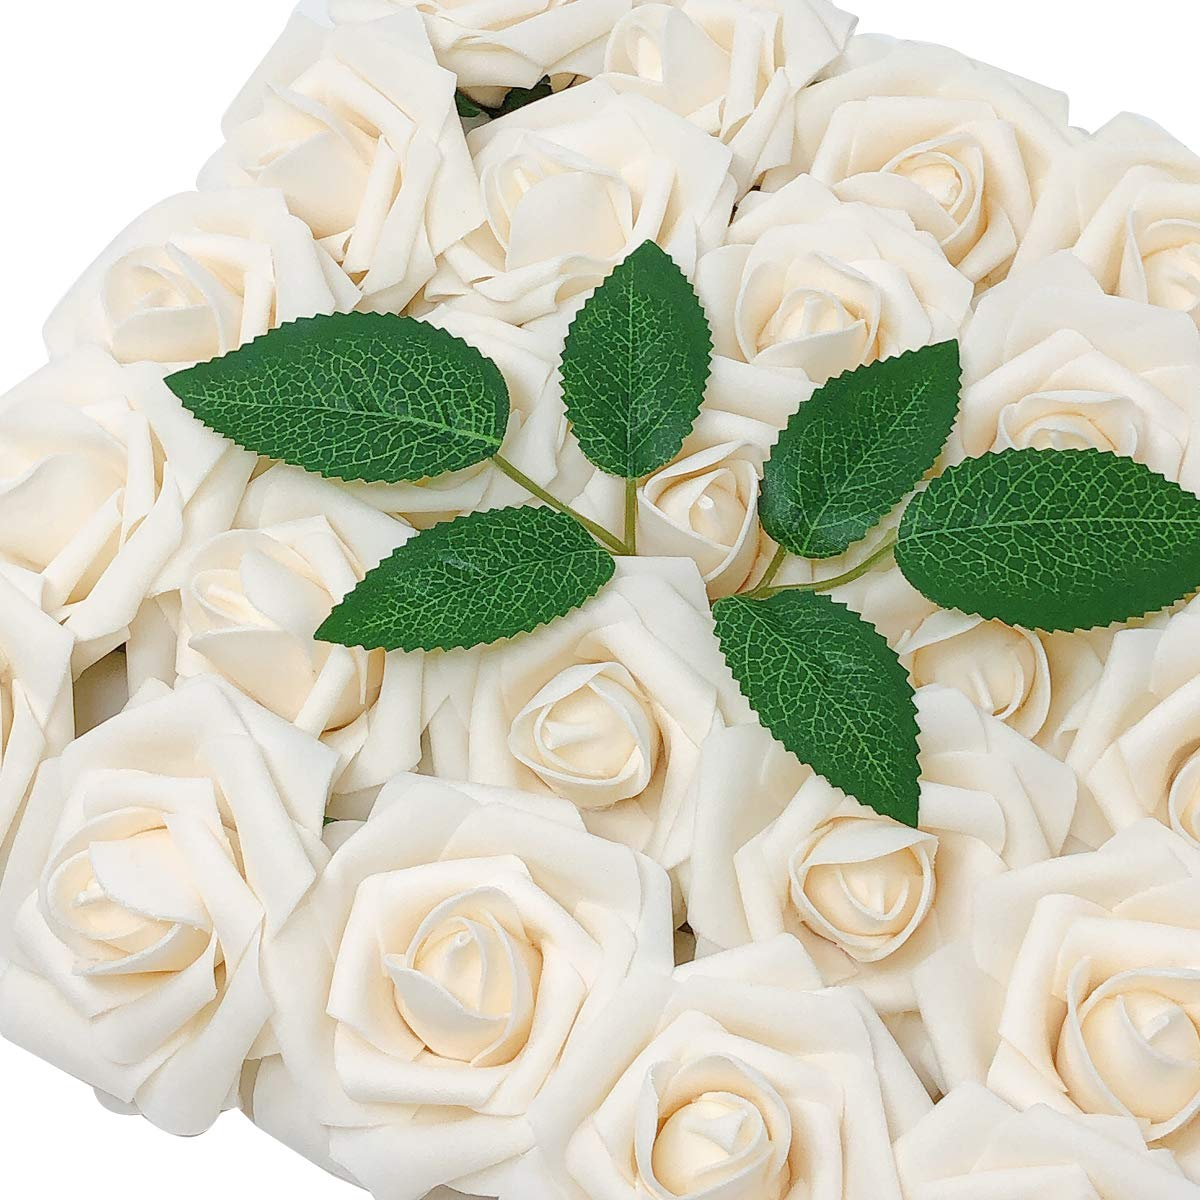 Wrapables Rose, Real Touch DIY Wedding Bouquets and Centerpieces, Aquamarine Artificial Flowers,